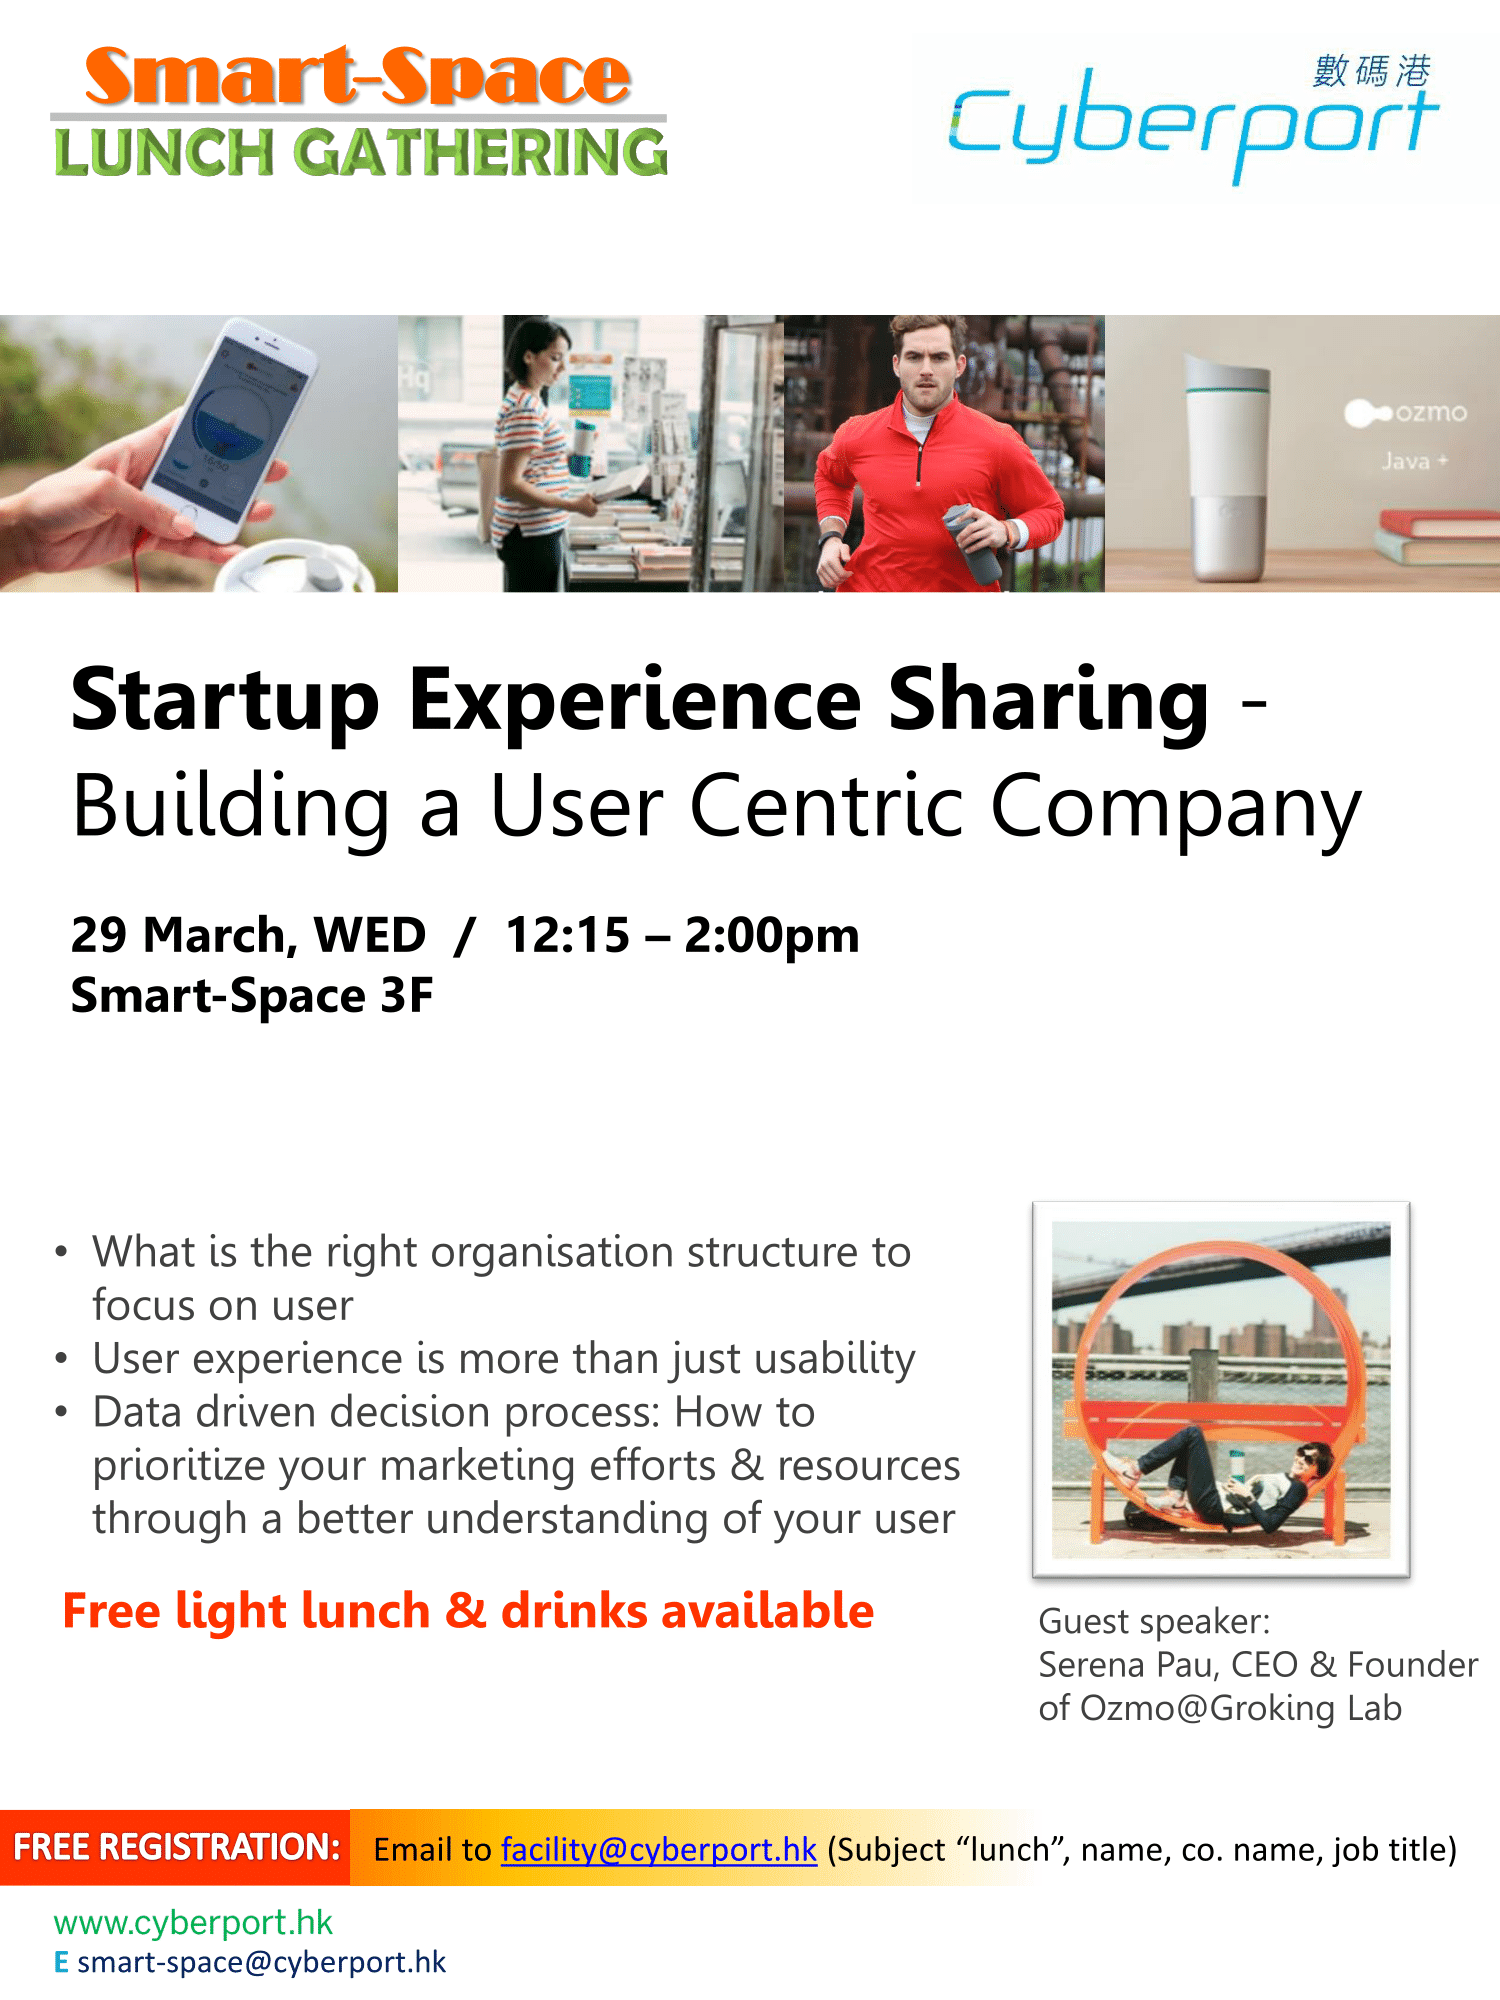 Smart-Space Lunch Gathering: Startup Experience Sharing - Building a User Centric Company